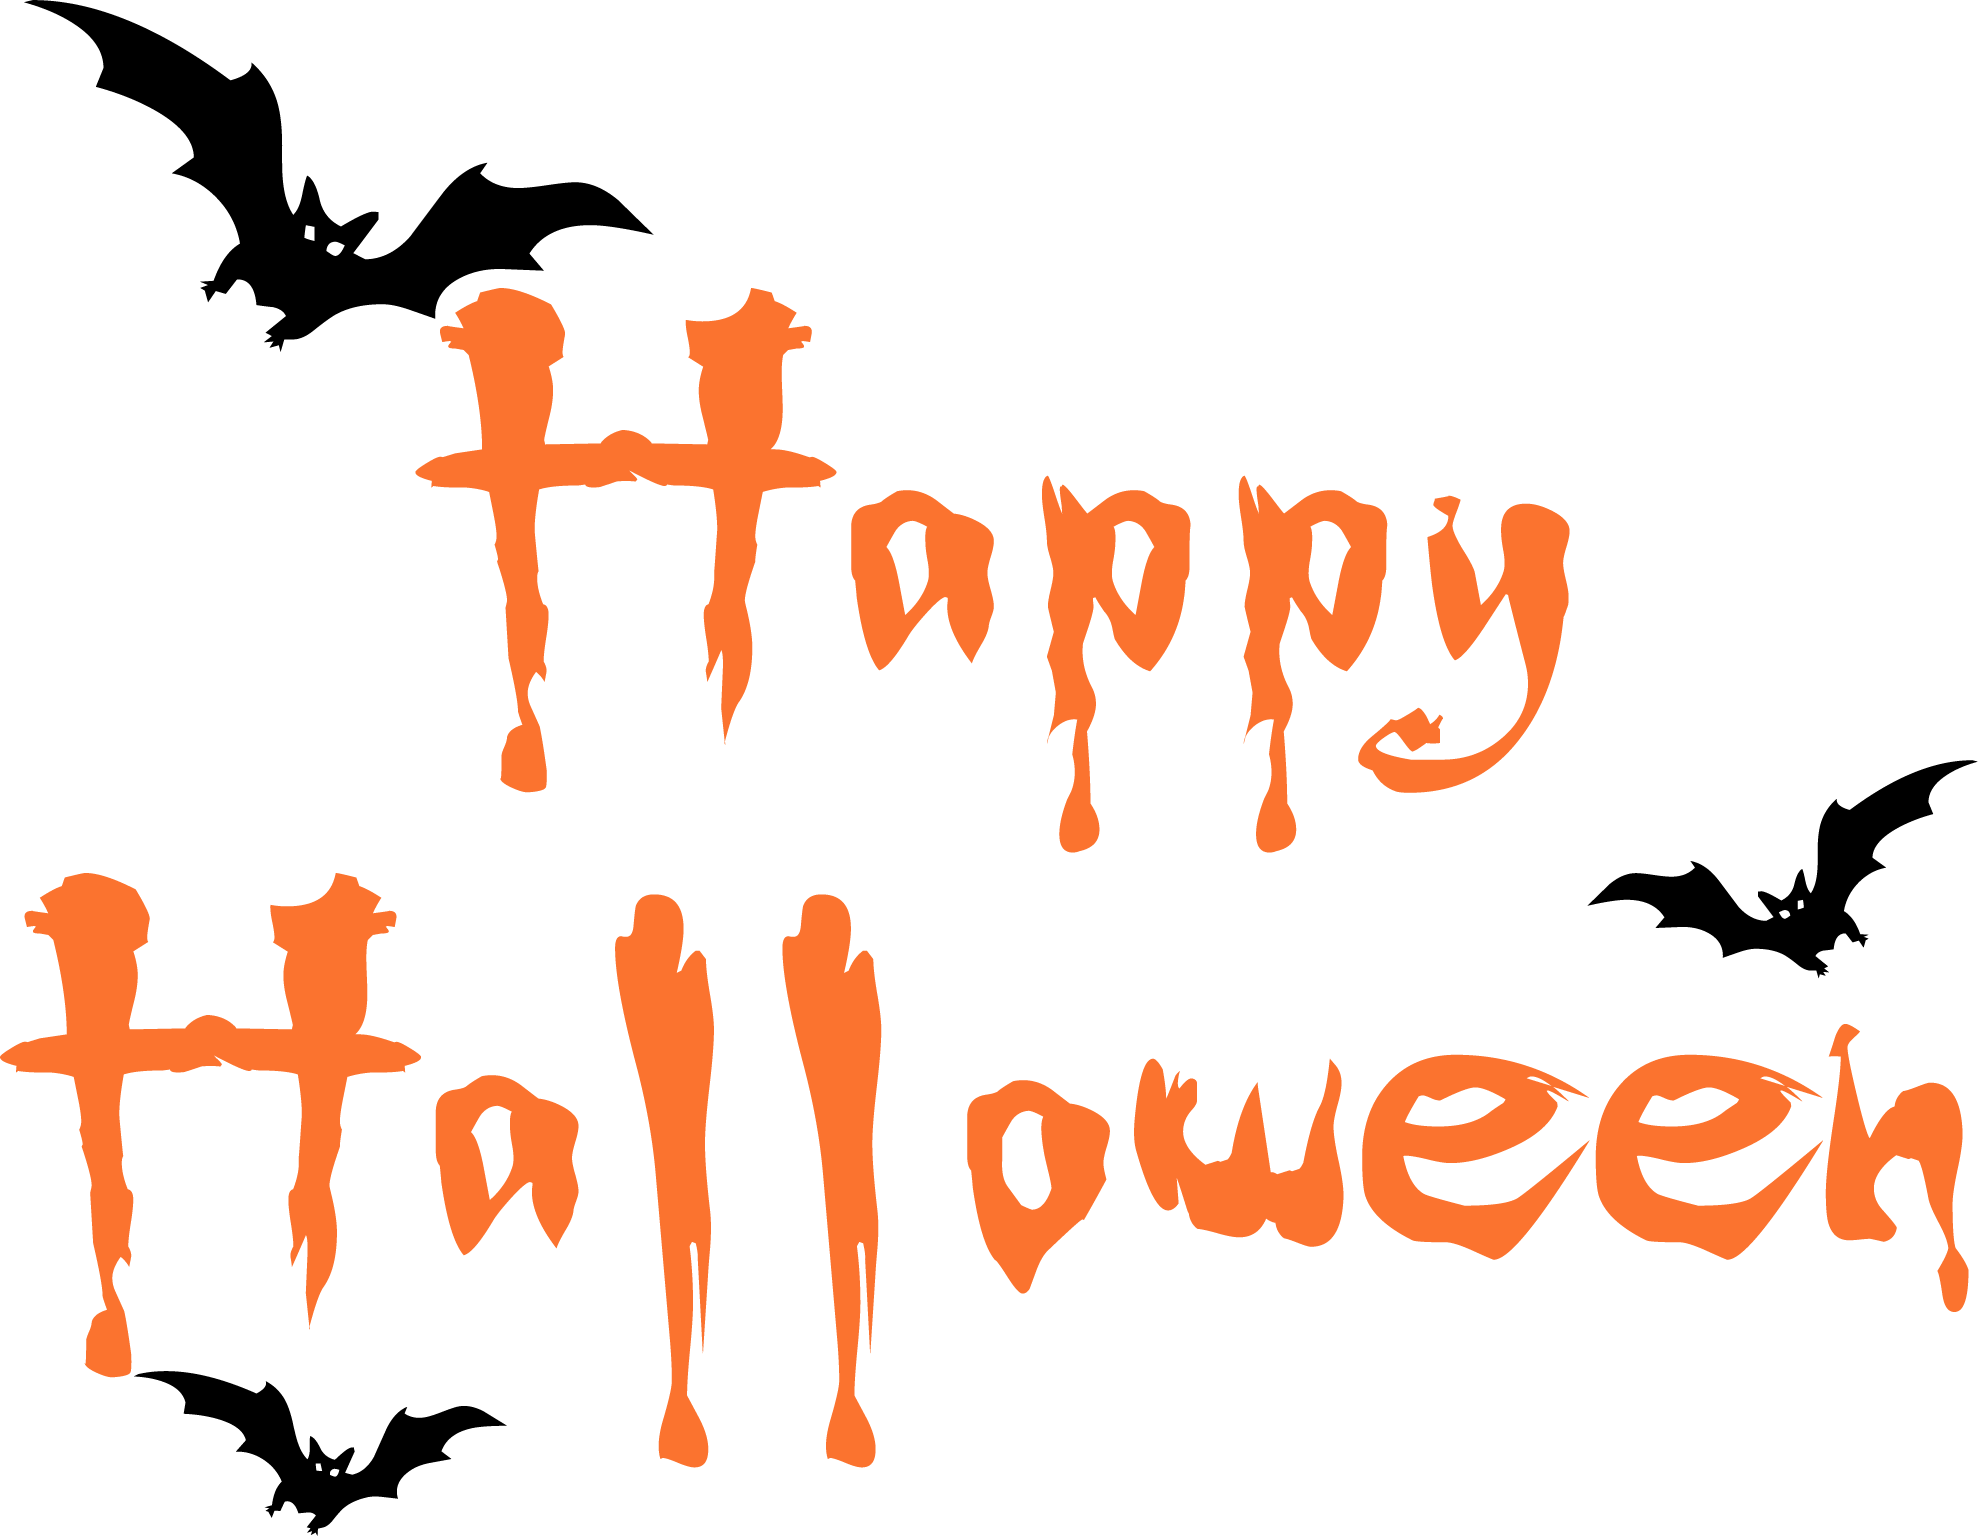 Happy Halloween From The Team At Rnr Automotive Refinishing Halloween Wishes Halloween Images Halloween Pictures